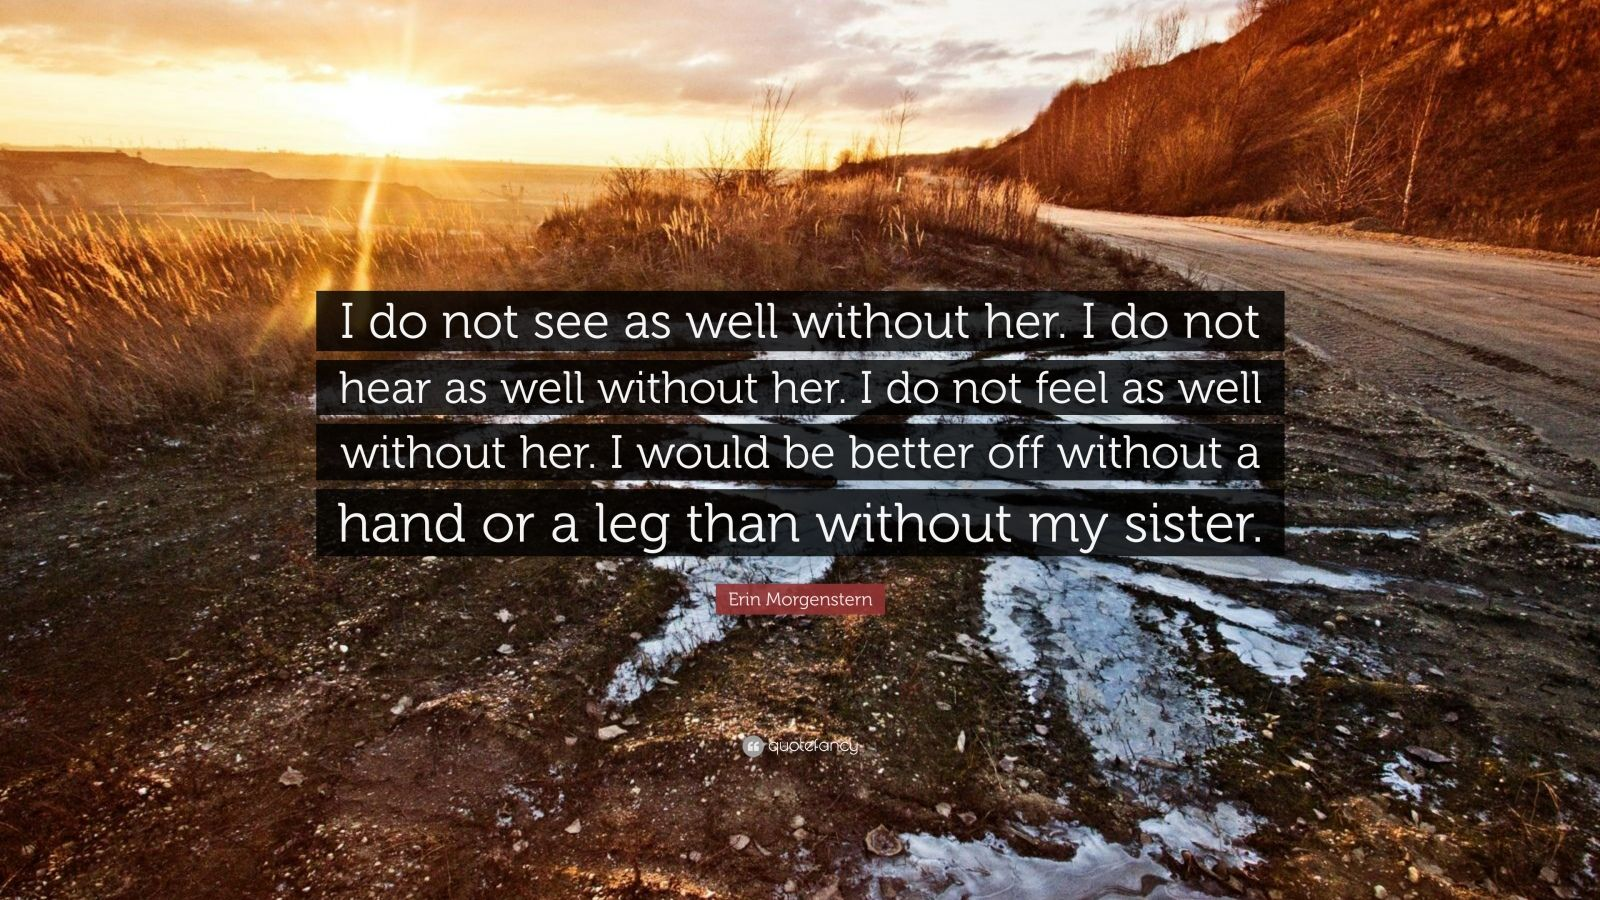 """Erin Morgenstern Quote: """"I do not see as well without her. I do not hear as well without her. I do not feel as well without her. I would be better off without a hand or a leg than without my sister."""""""